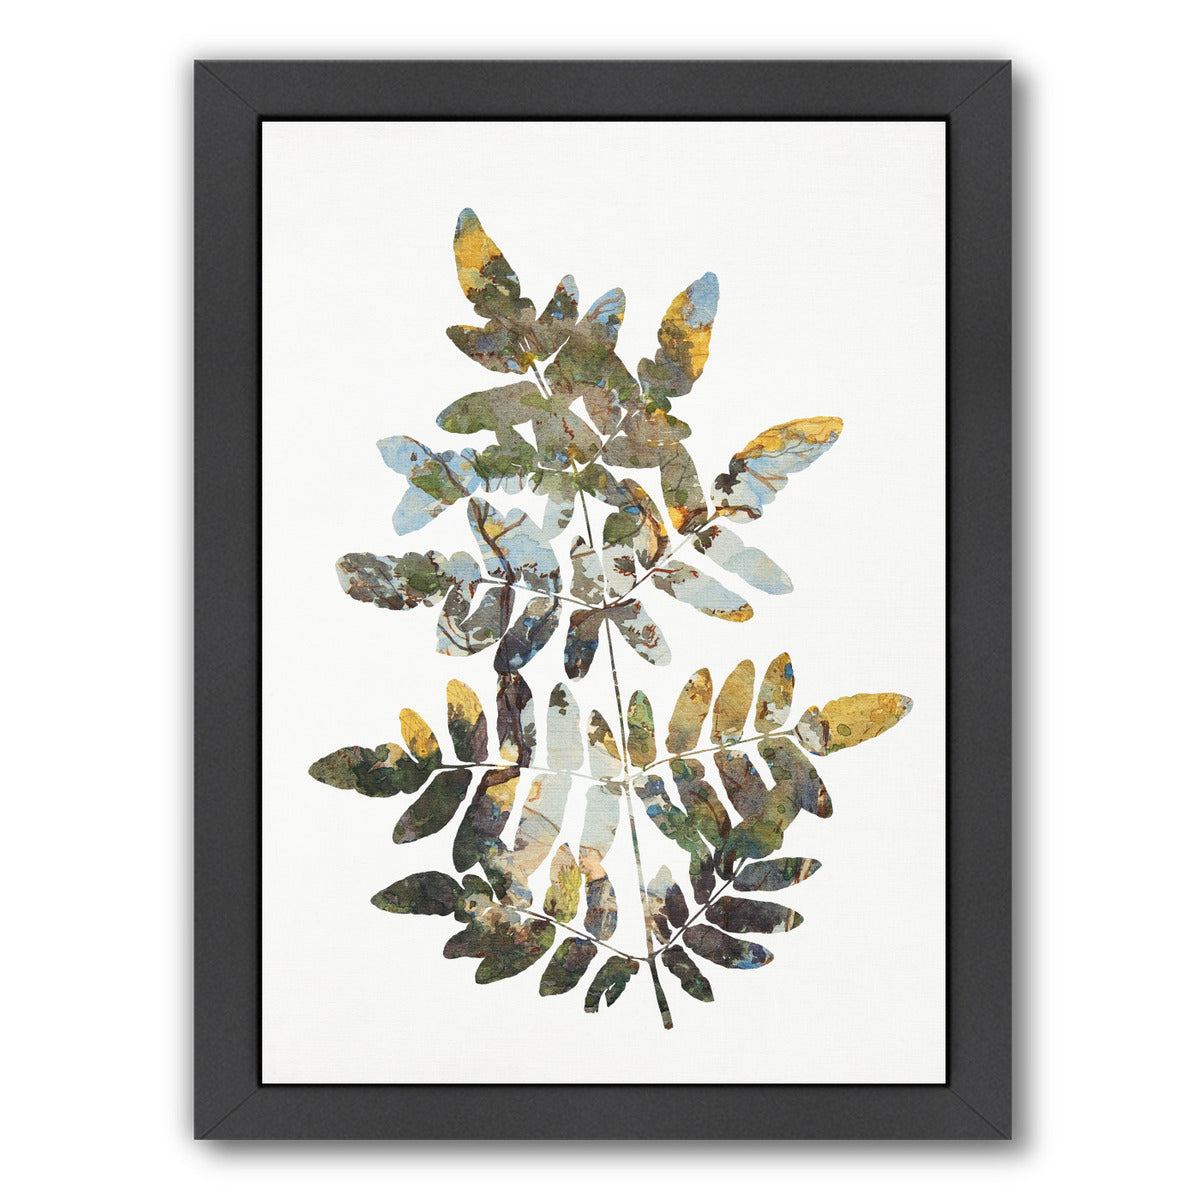 Leaf Collage Ii By Chaos & Wonder Design - Black Framed Print - Wall Art - Americanflat